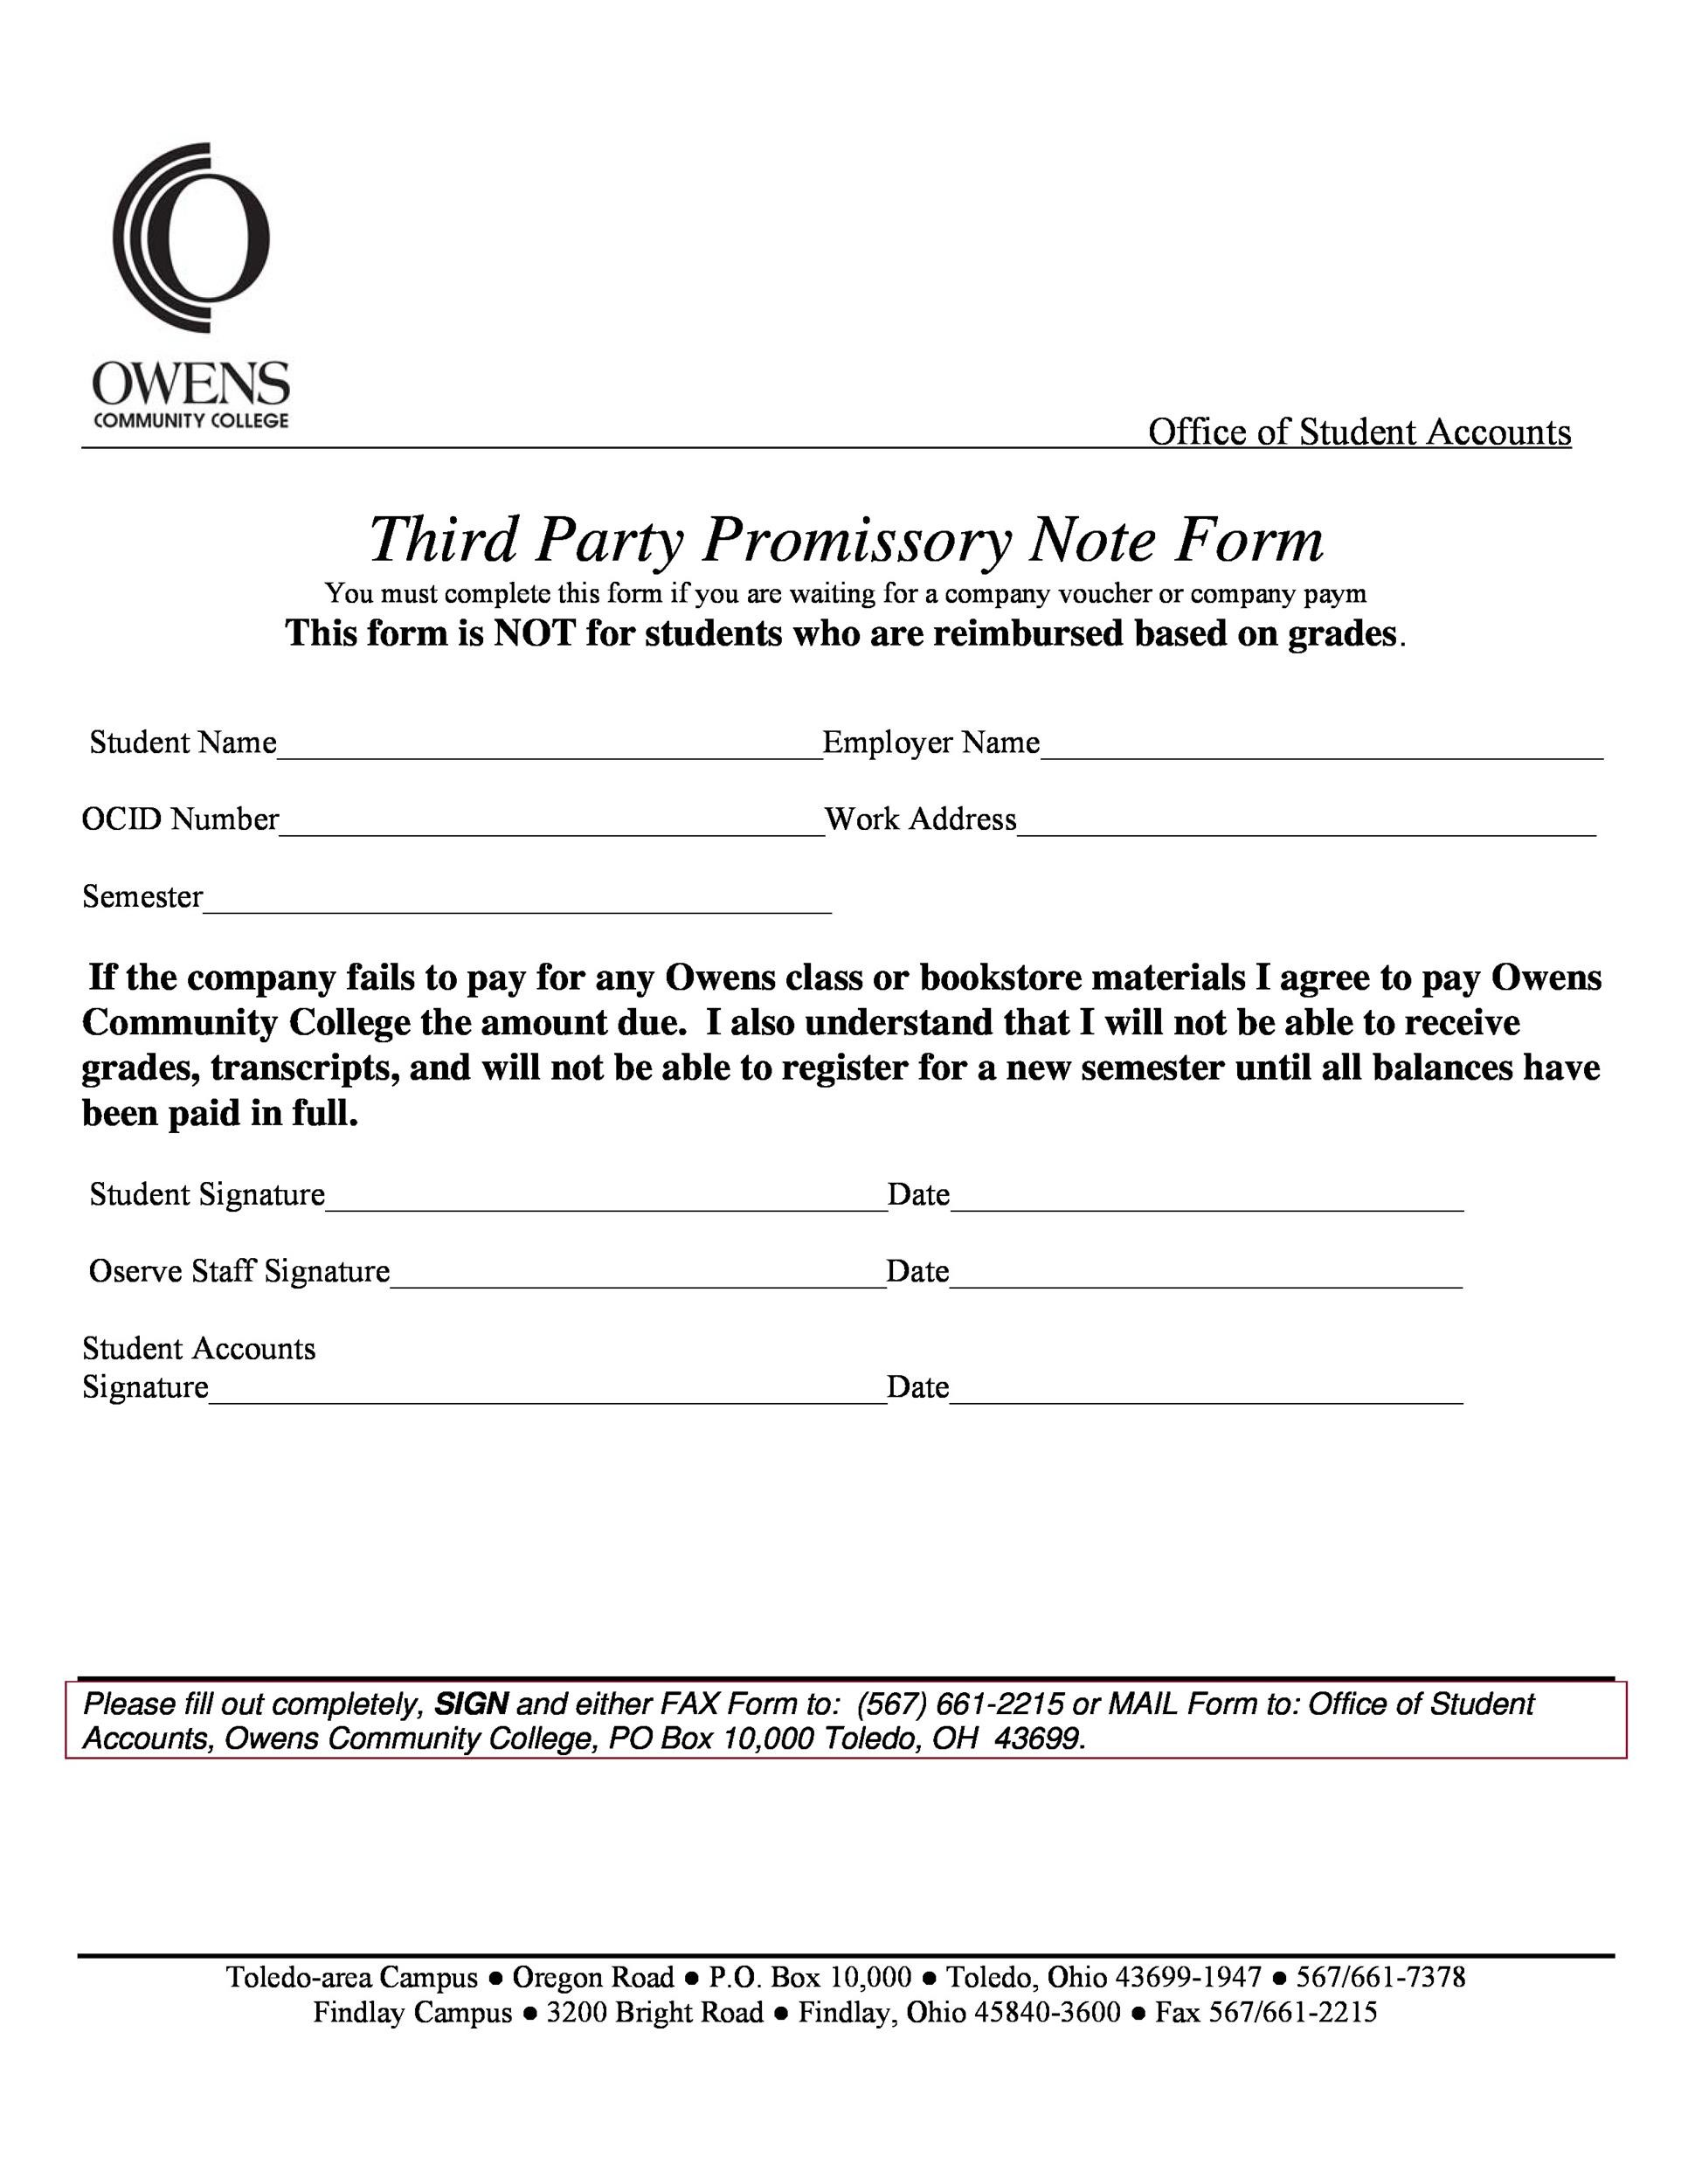 45 FREE Promissory Note Templates Forms Word PDF Template Lab – Form of Promissory Note